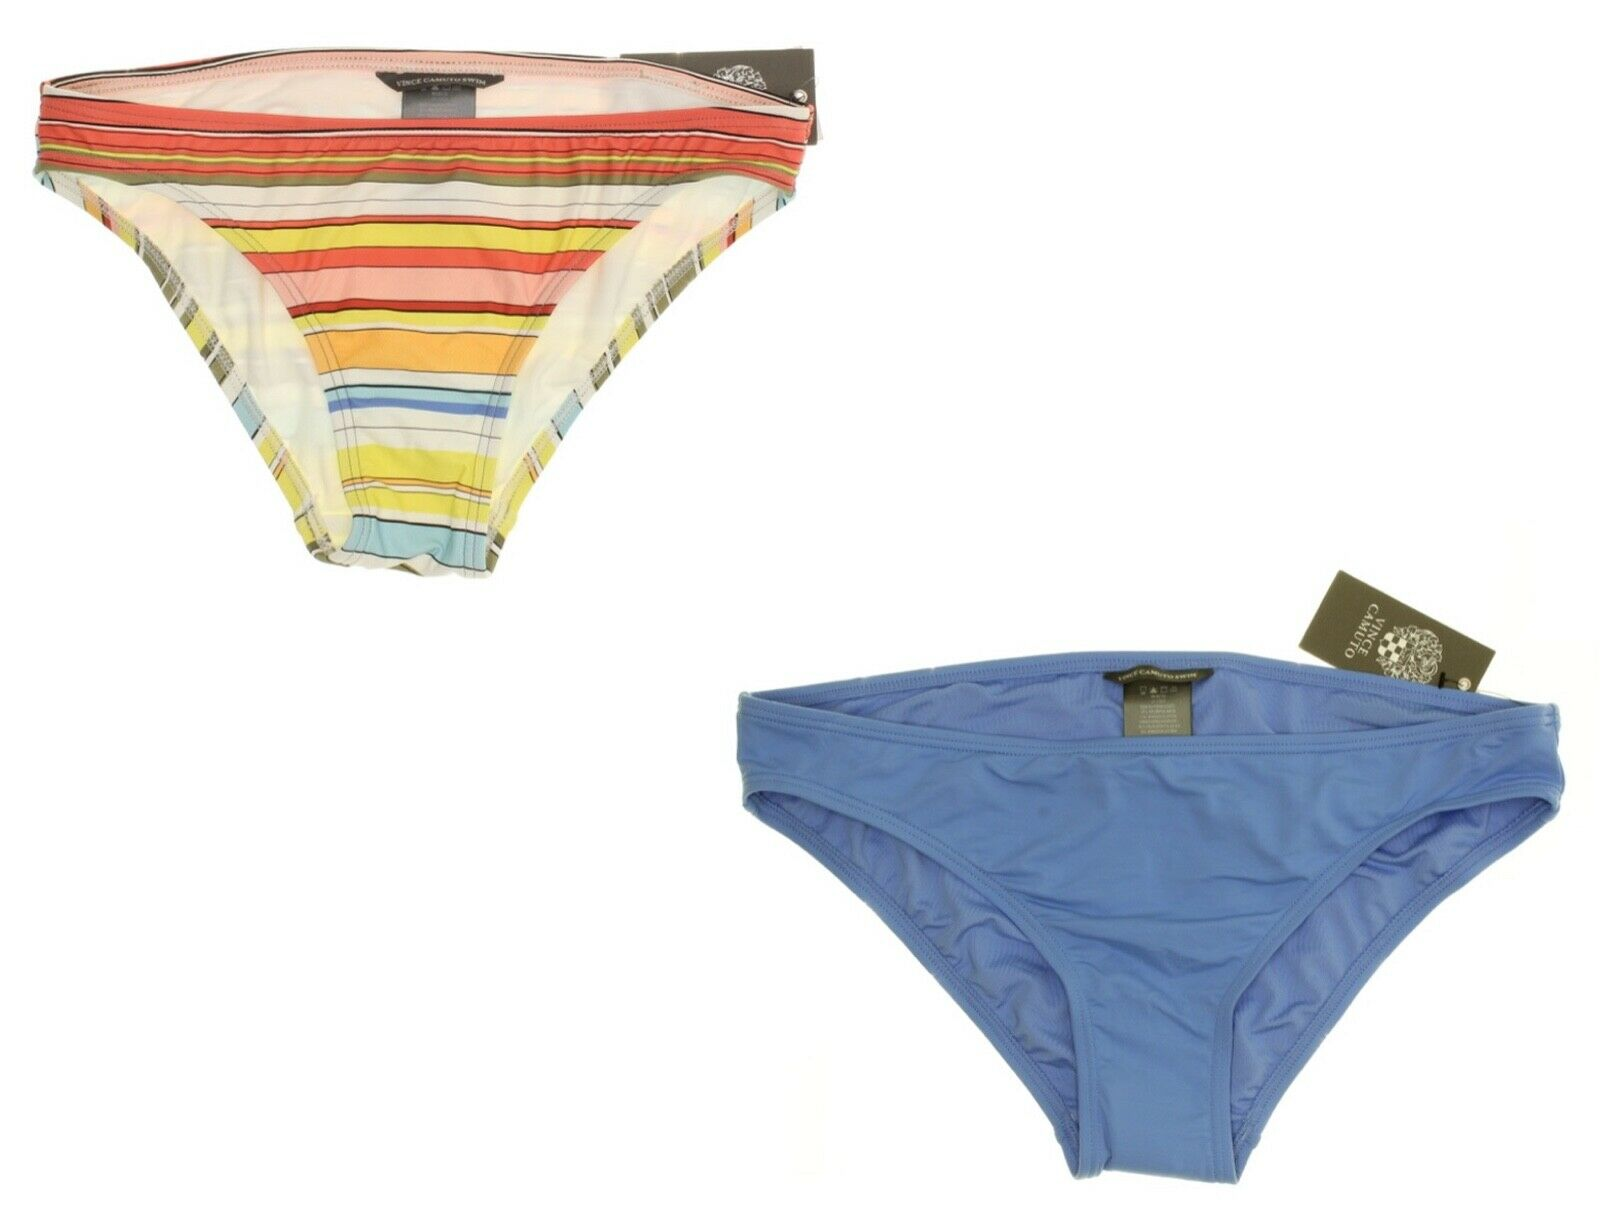 Vince Camuto Women s Classic Hipster Bikini Swimsuit Bottoms - Select Size/color - $17.87